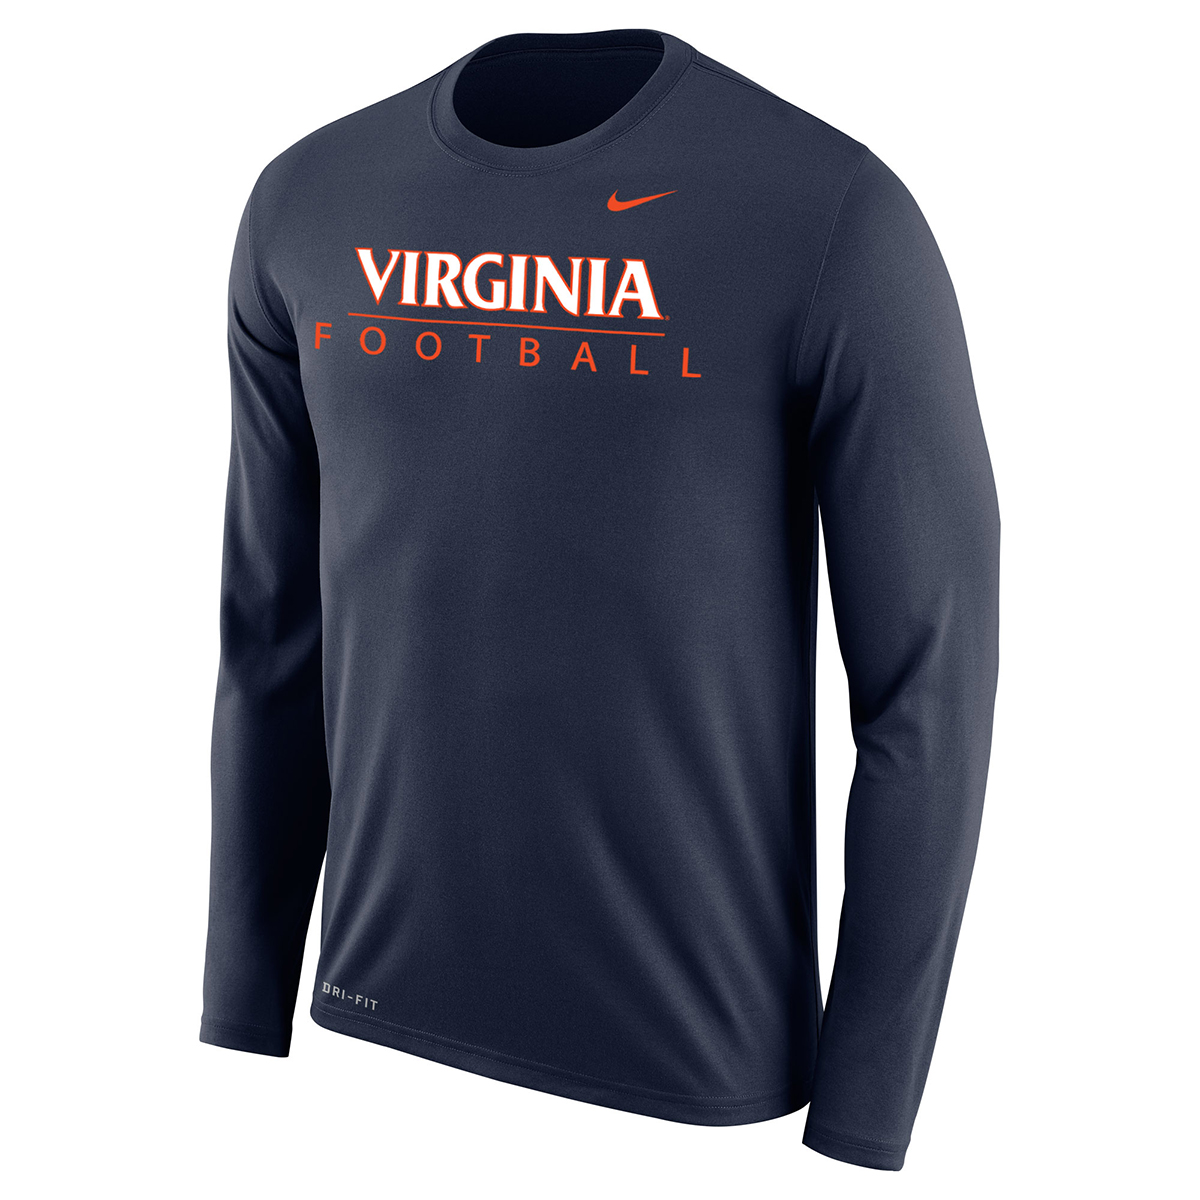 University of Virginia Football Dri-Fit LS T-shirt